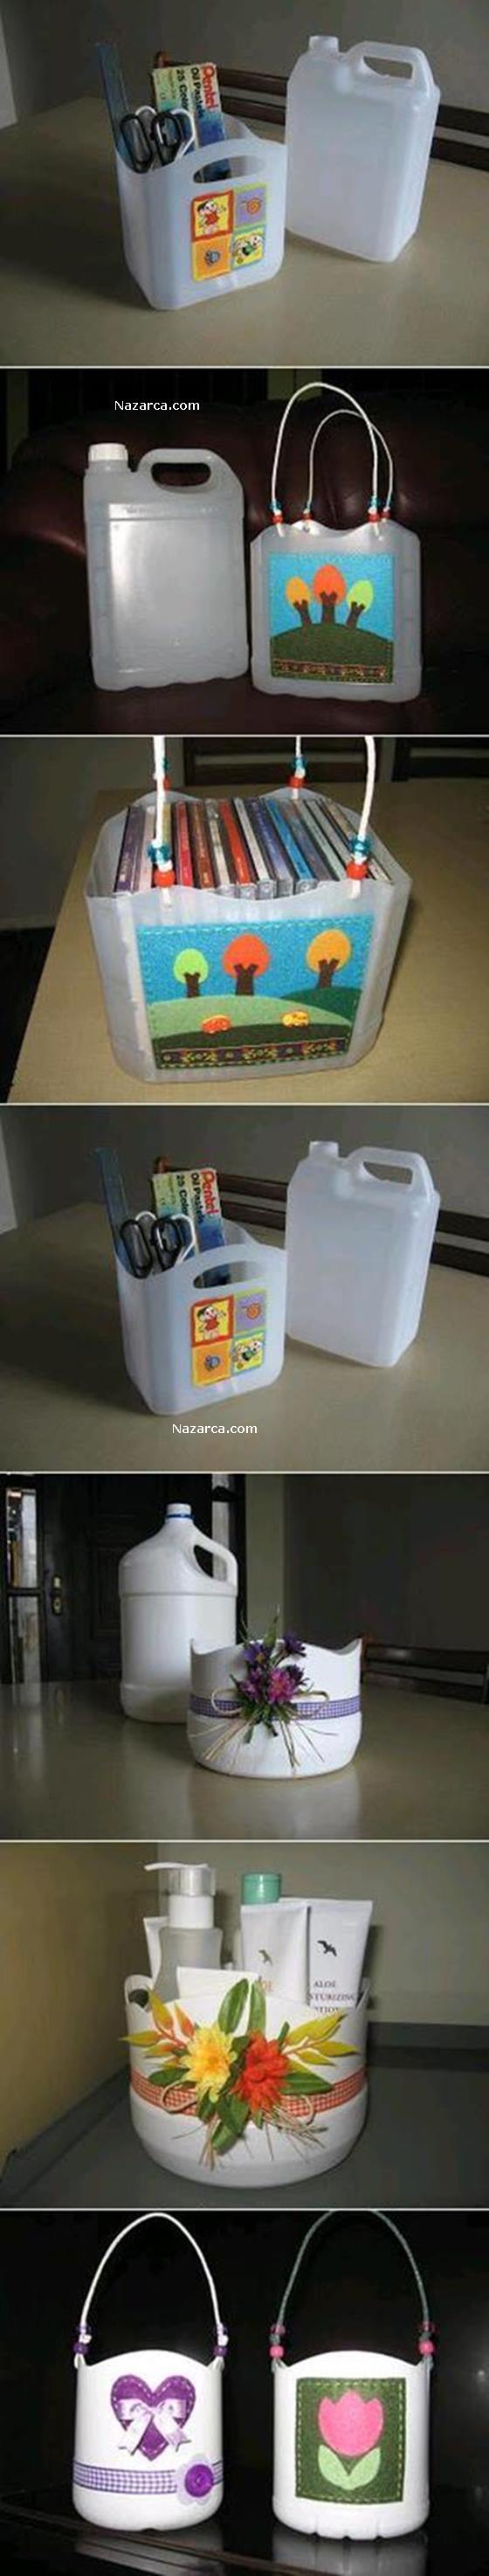 DIY-Plastic-Bottle-Baskets